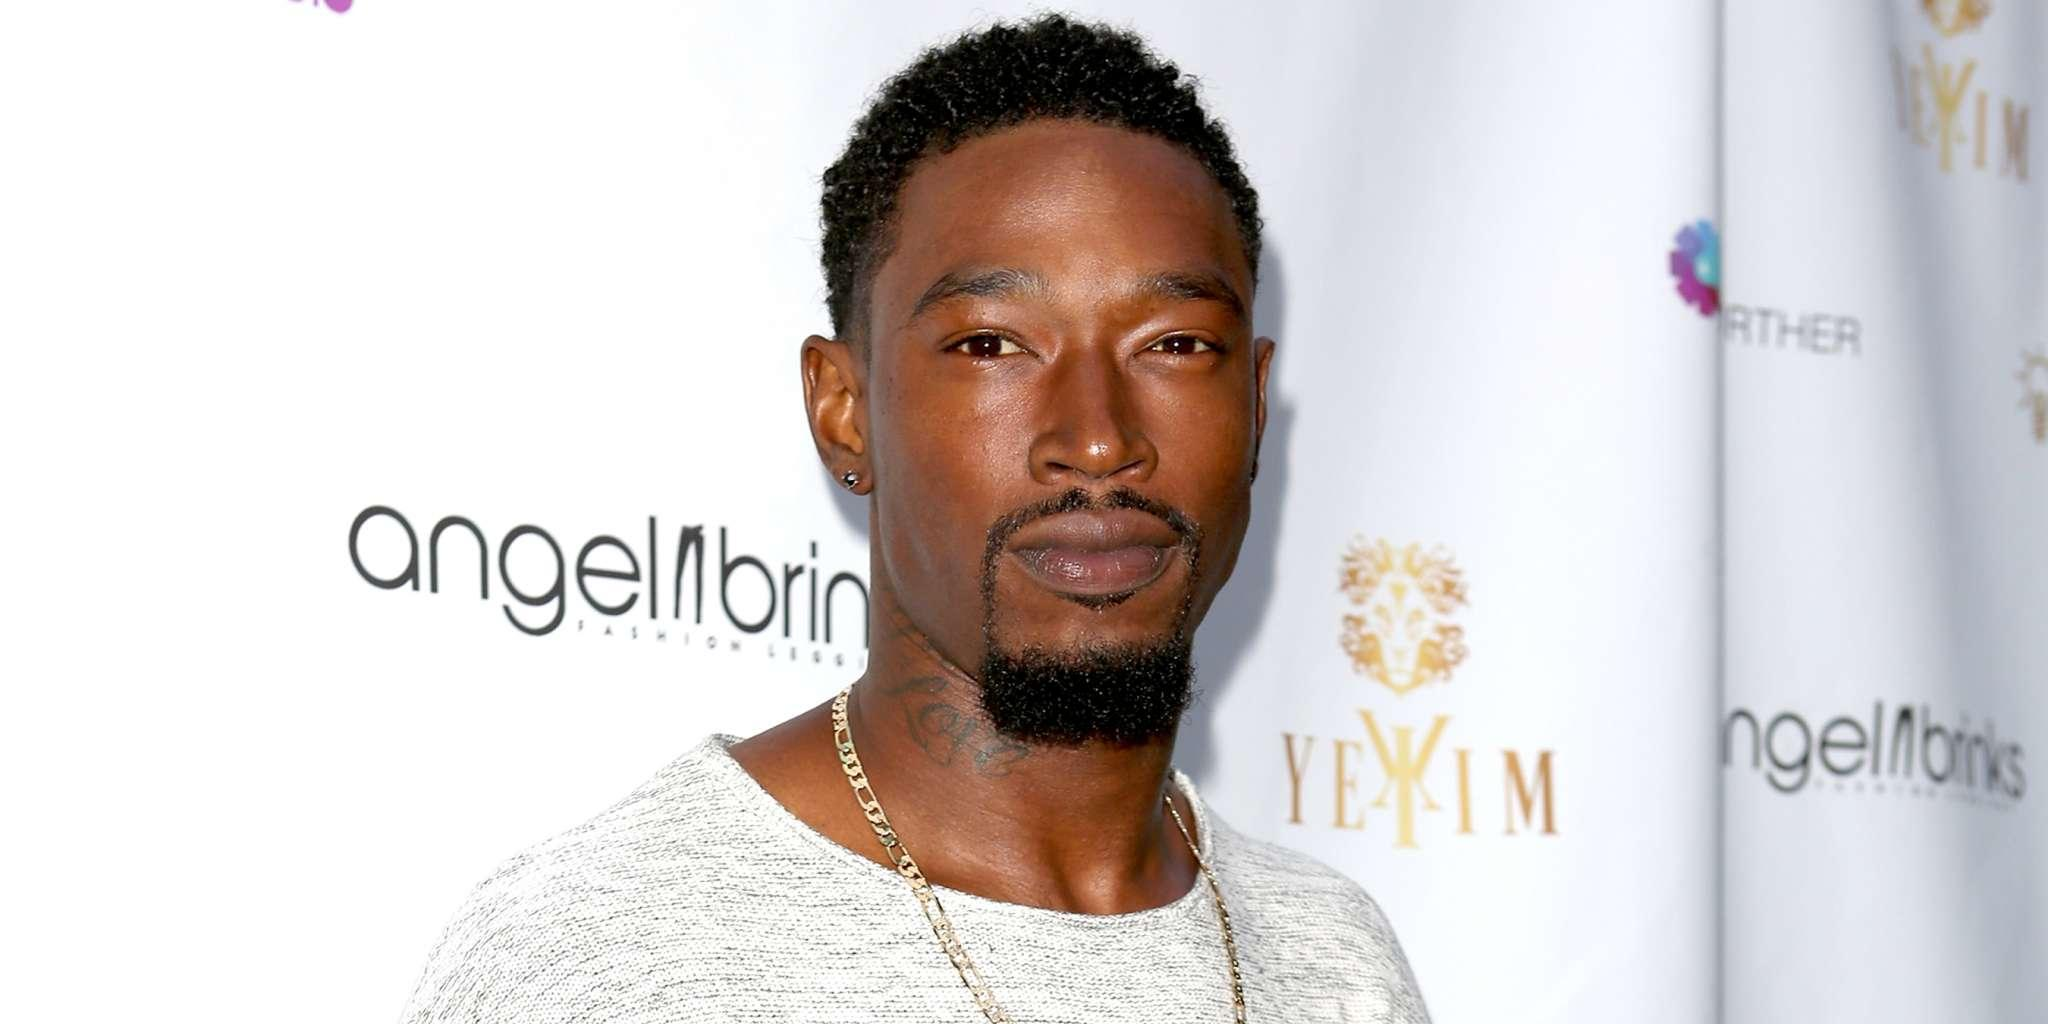 Kevin McCall Asks Rickey Smiley For Help And Denies Domestic Violence Claims